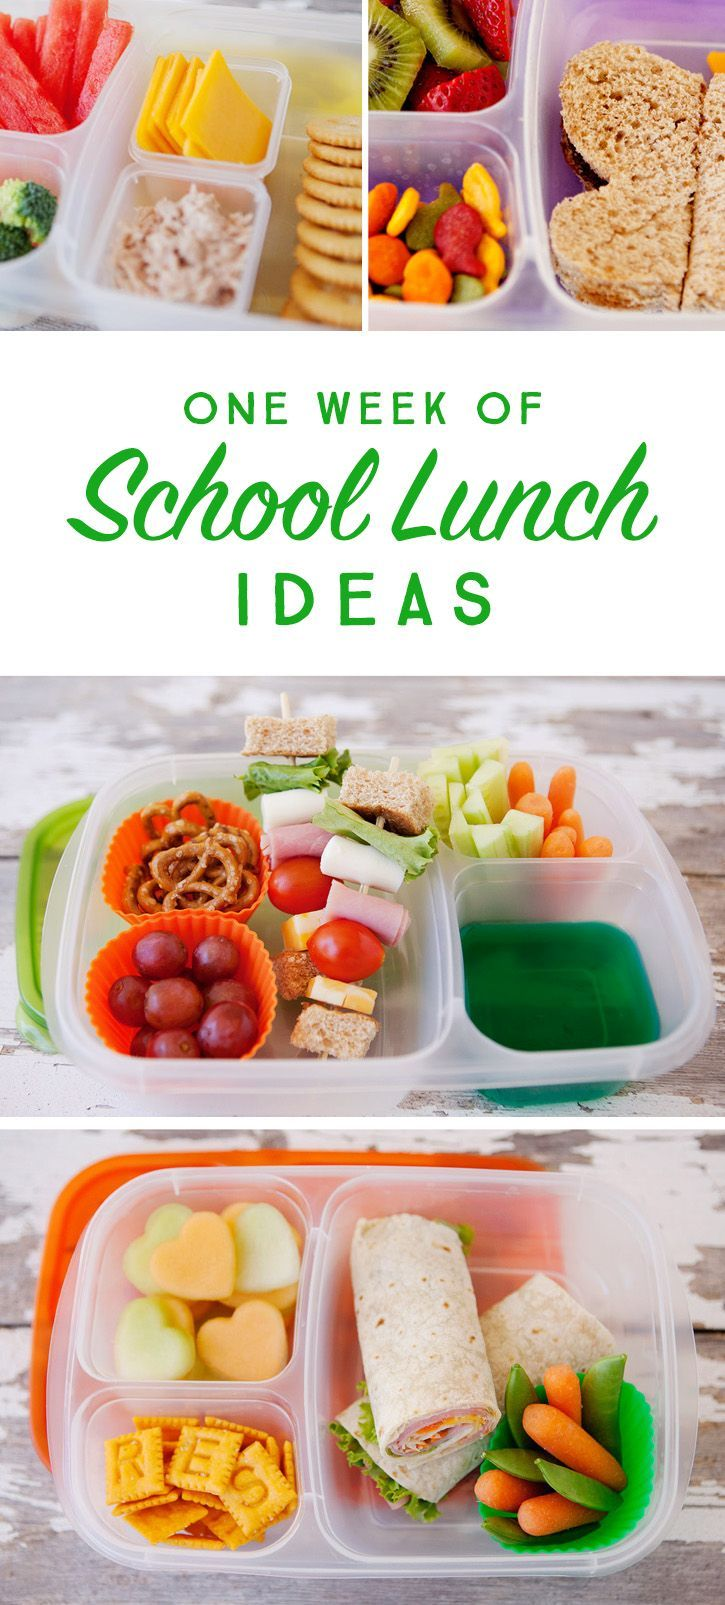 A weeks worth of simple, healthy school lunch ideas that go beyond the typical PB&J! I don't know about you, but I'm always on the lookout…